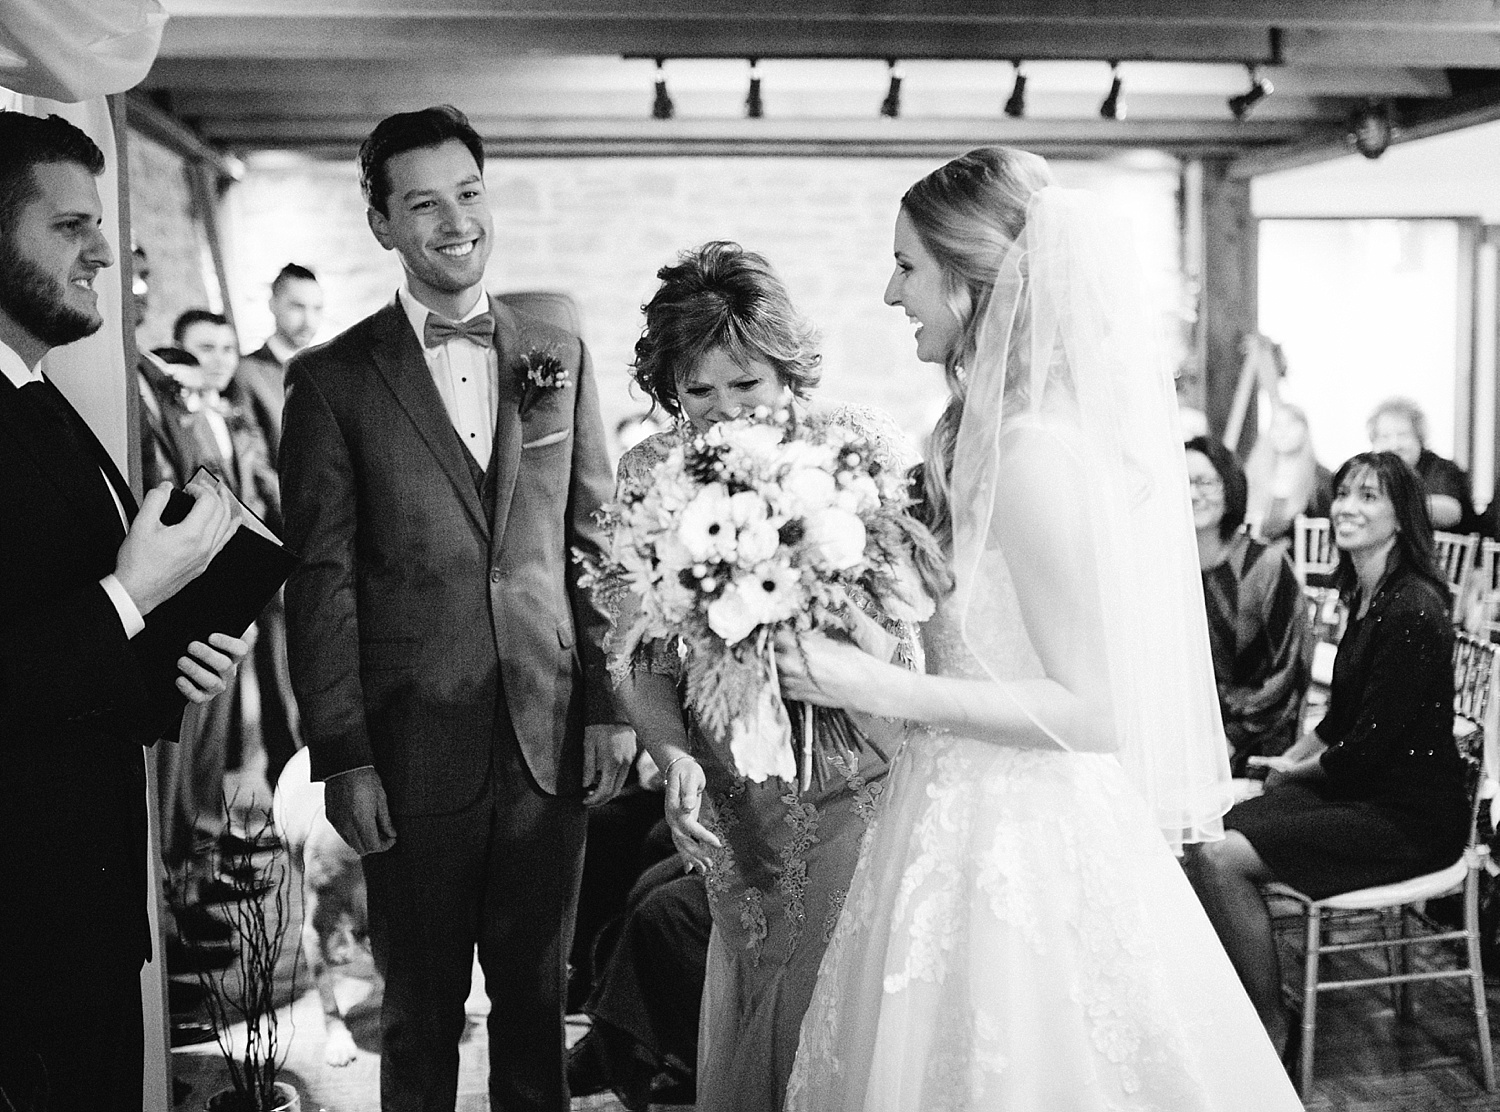 jessdavid_barnonbridge_phoenixville_winter_wedding_image_067.jpg